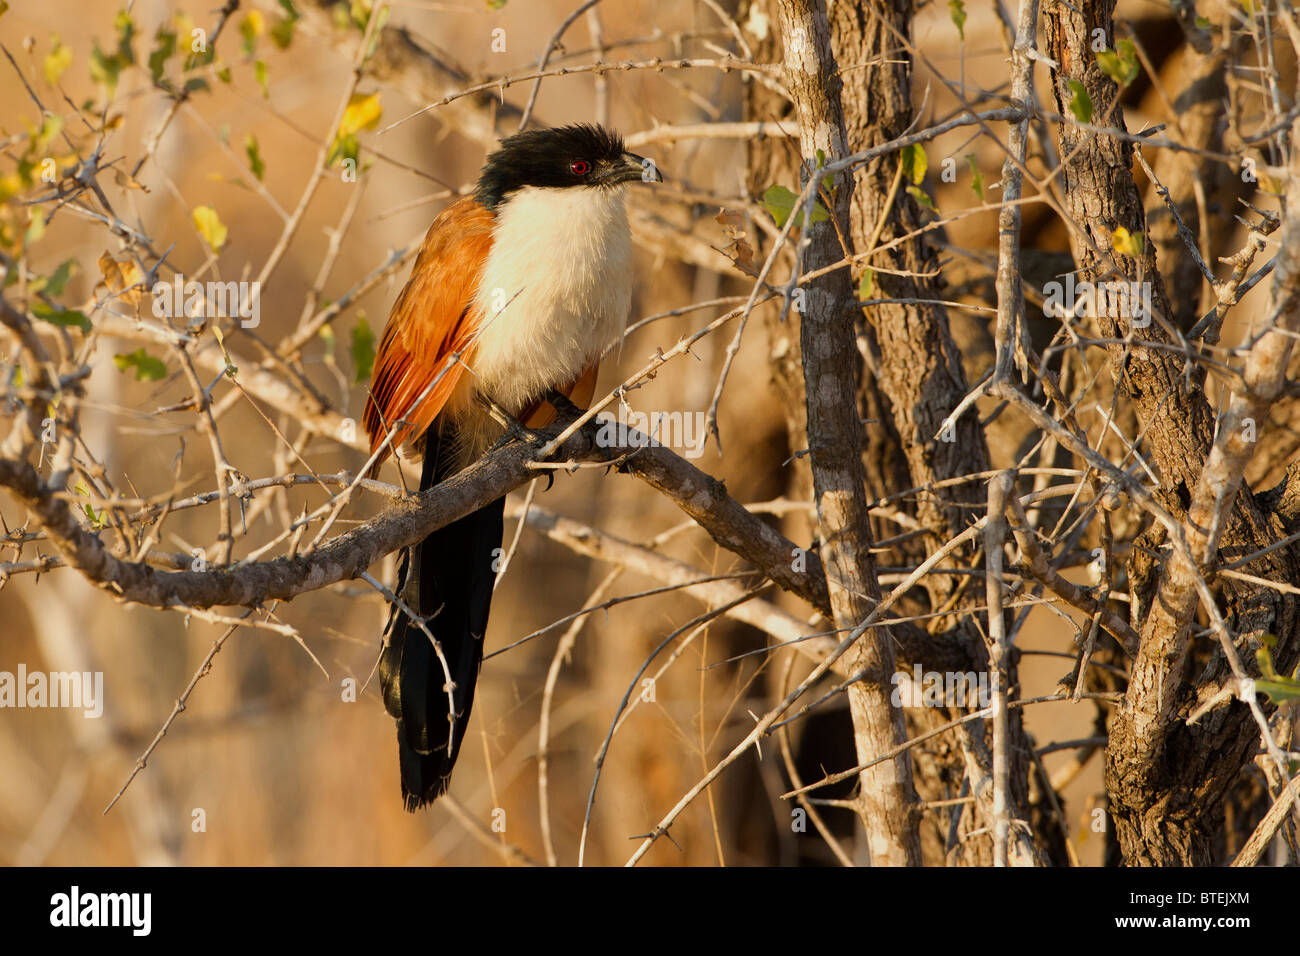 Burchell's Coucal on perch, Kruger National Park, South Africa - Stock Image